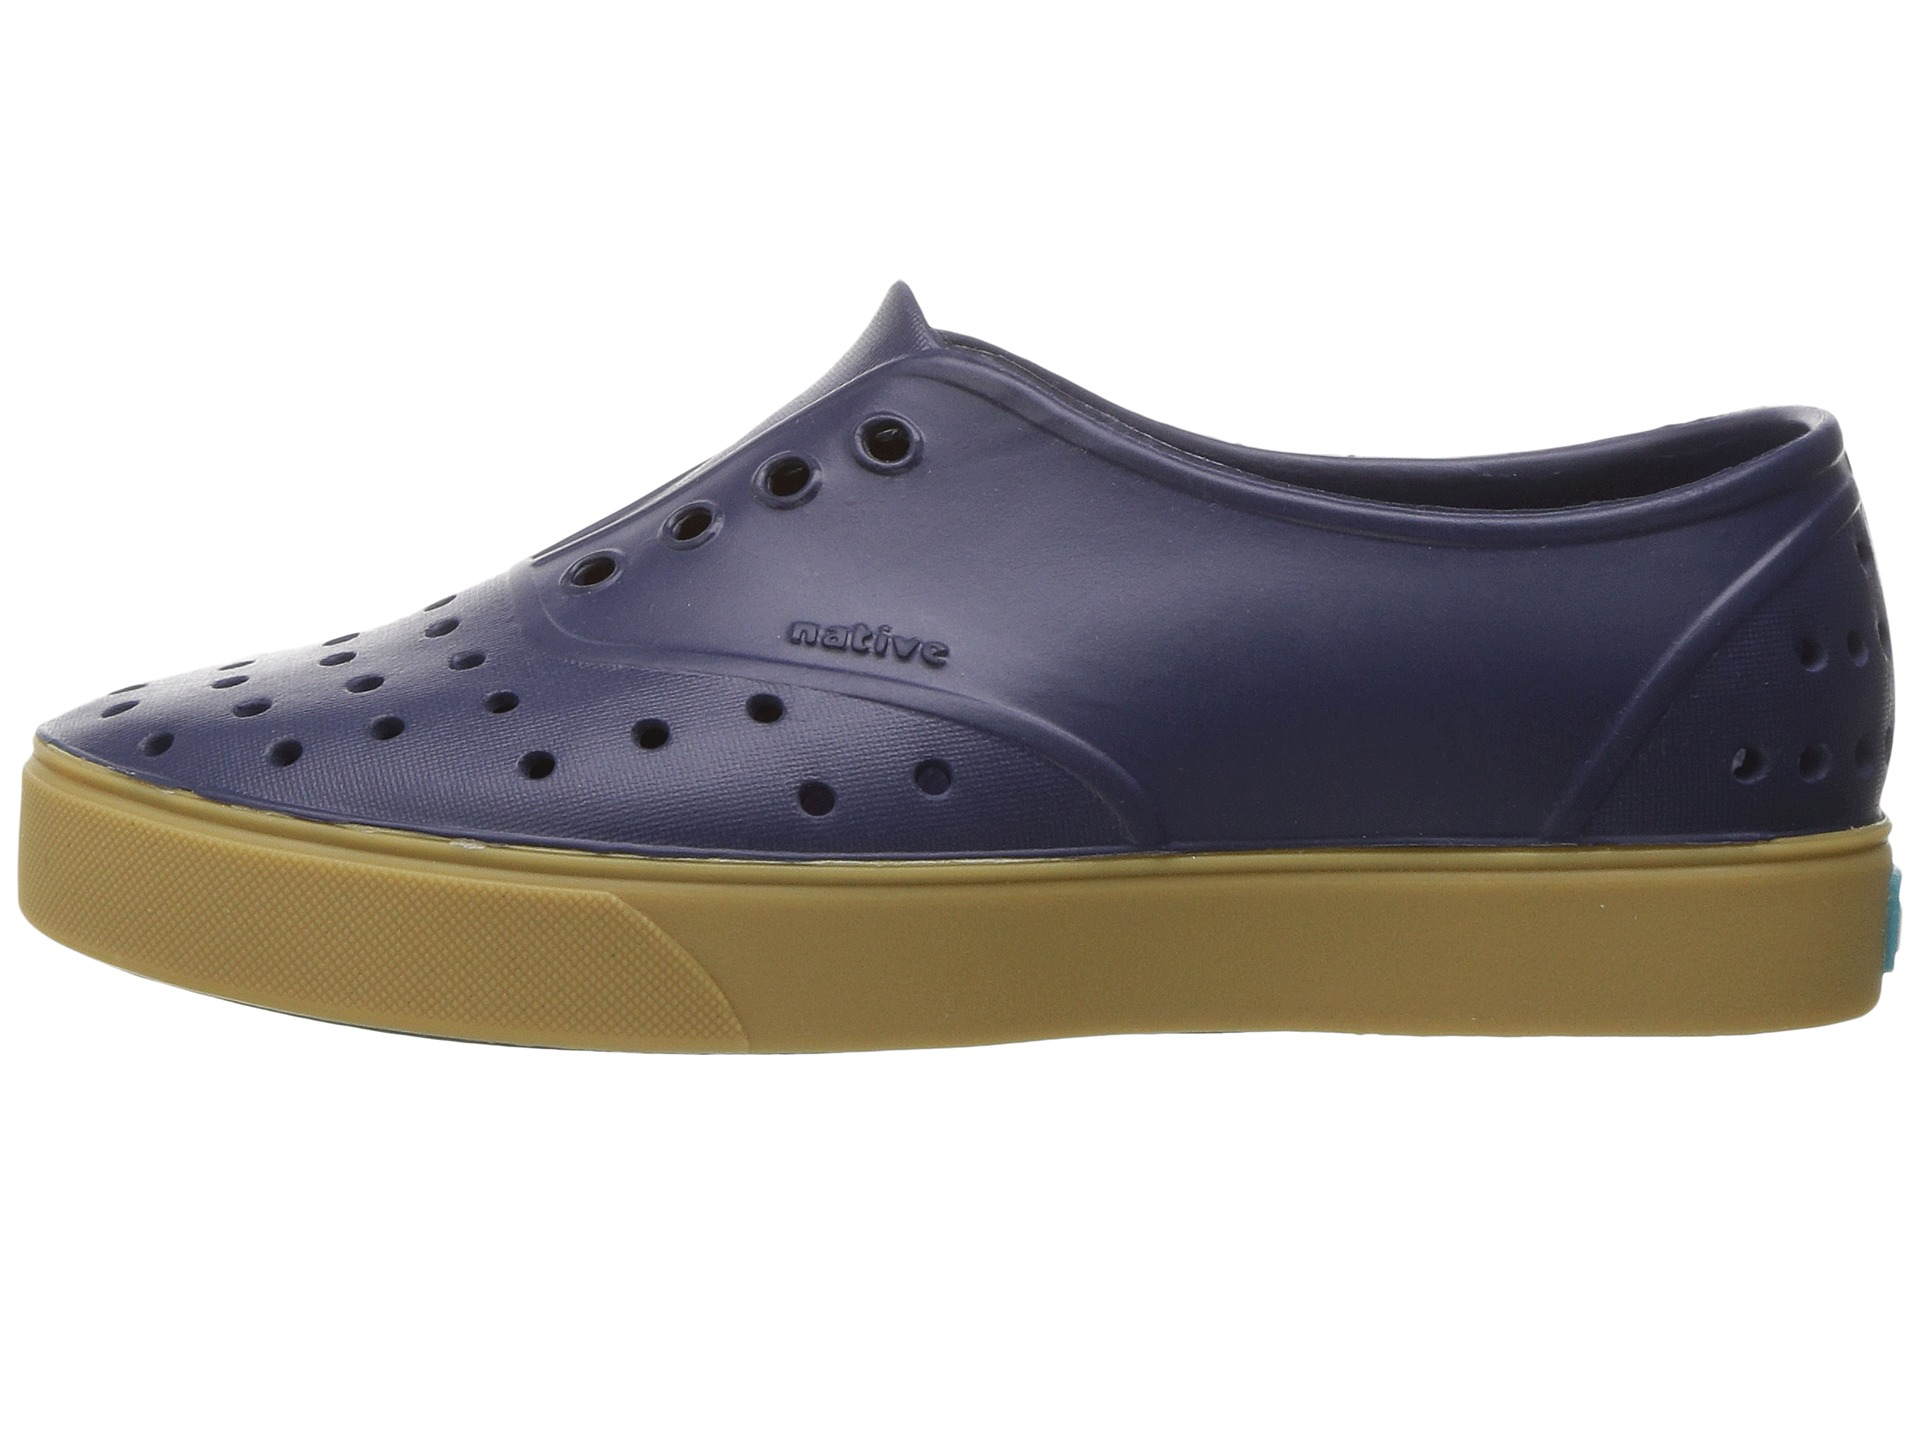 shoes miller with gum rubber kid at